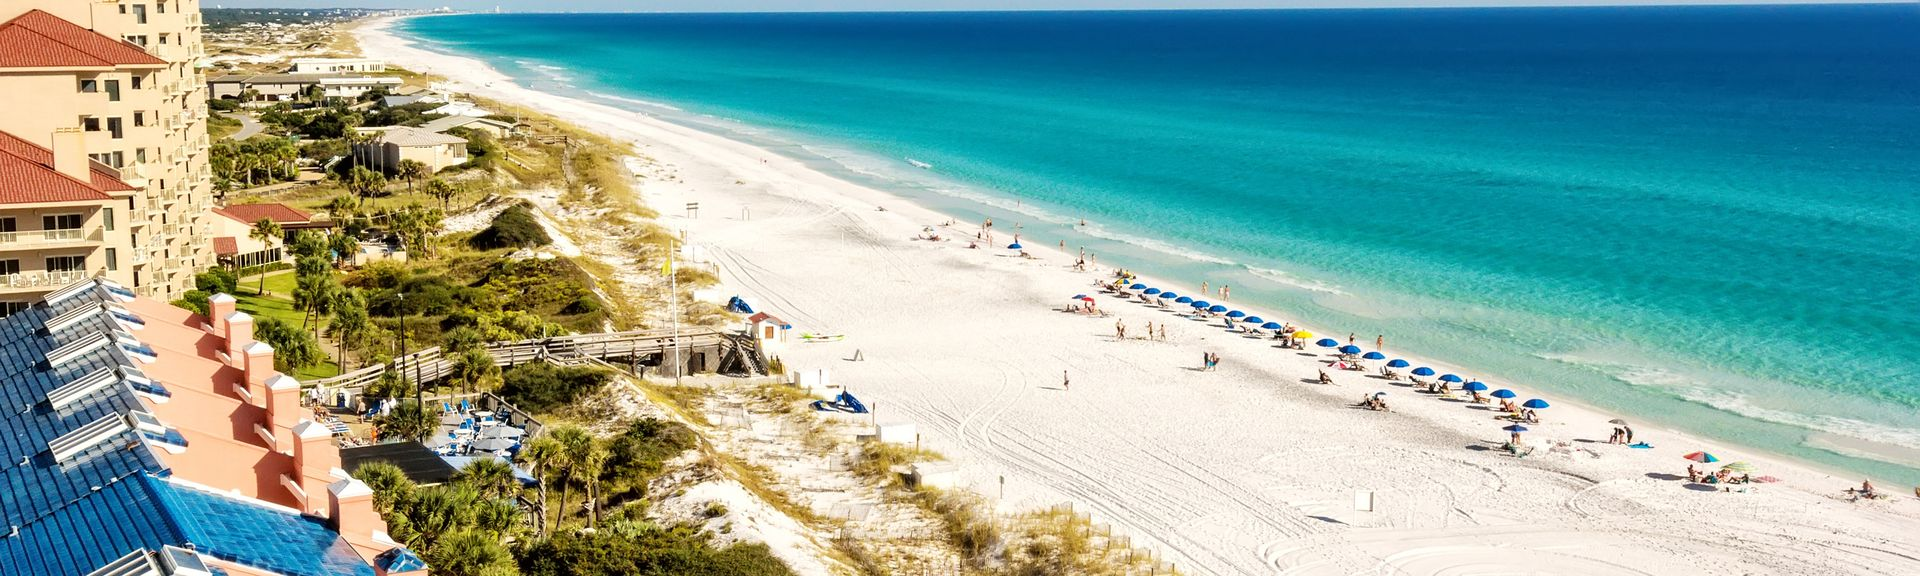 Miramar Beach, Florida, United States of America